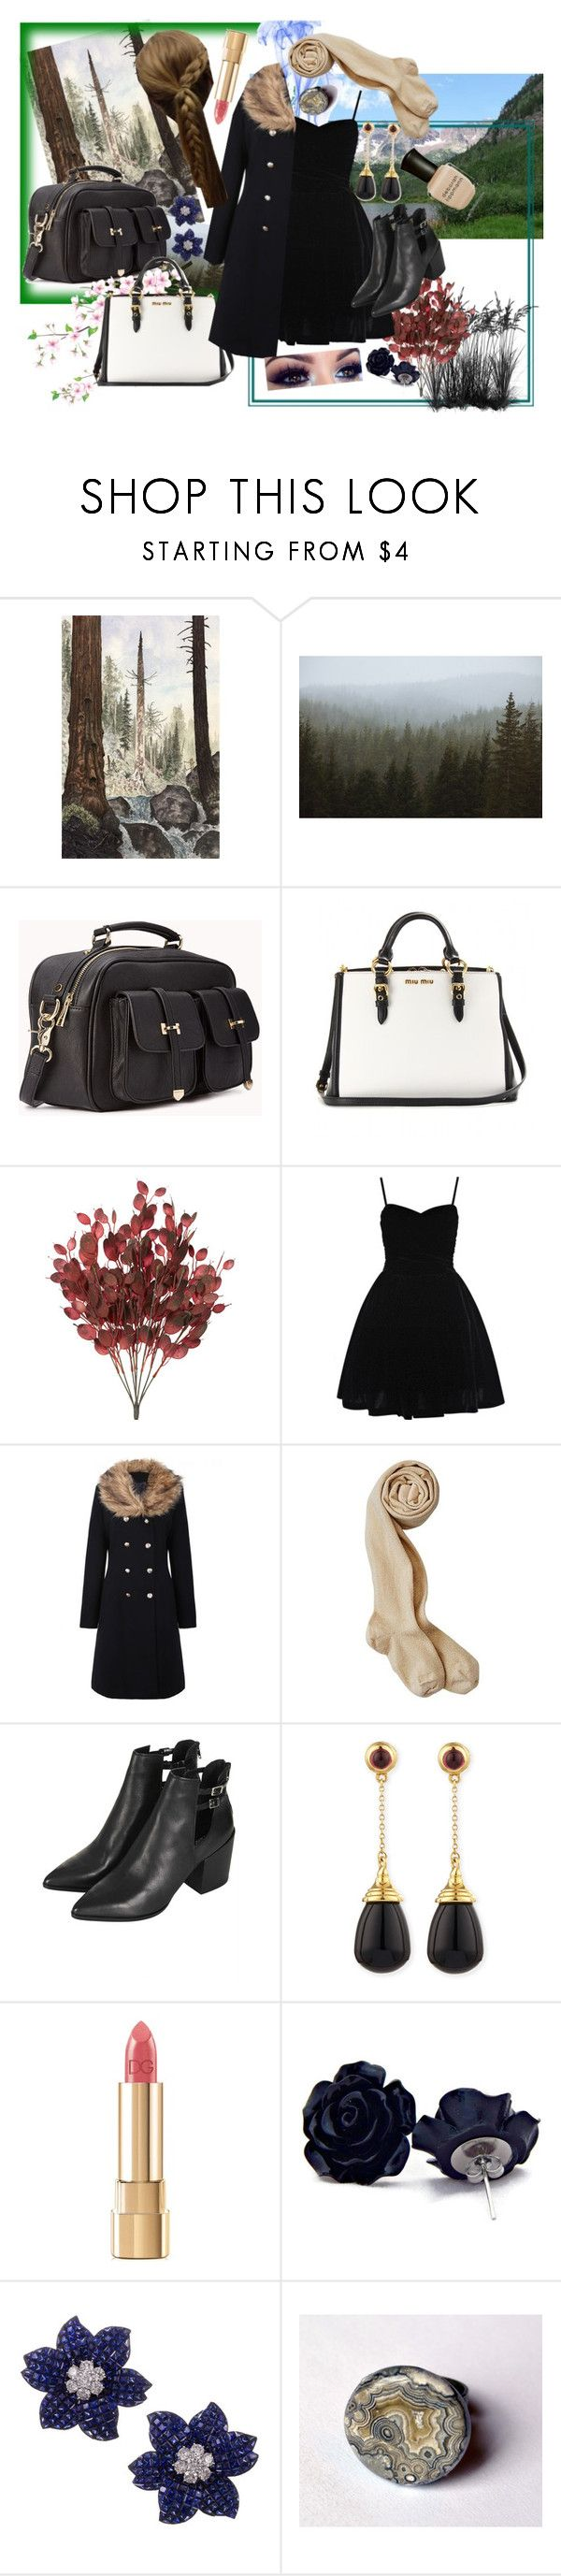 """Charley's Funeral Wear"" by thewhoreofcookies ❤ liked on Polyvore featuring Kevin Russ, Forever 21, Miu Miu, Coast, Topshop, Syna, Dolce&Gabbana, Deborah Lippmann and twilight"